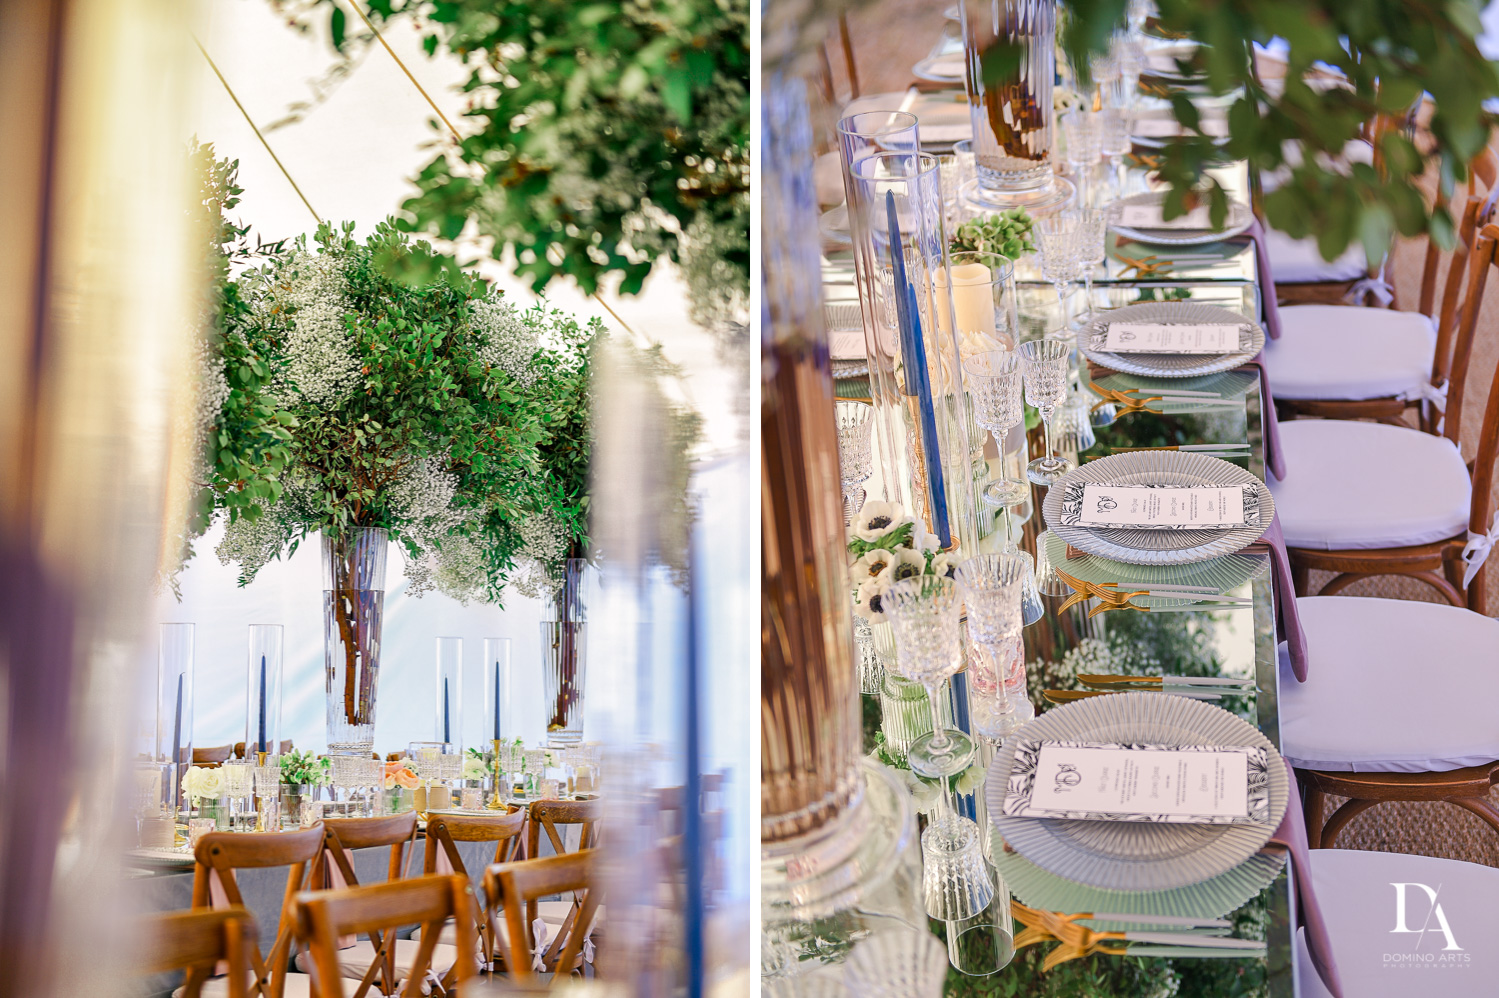 elegant details at Traditional Jewish Wedding at Deering Estate Miami by Domino Arts Photography